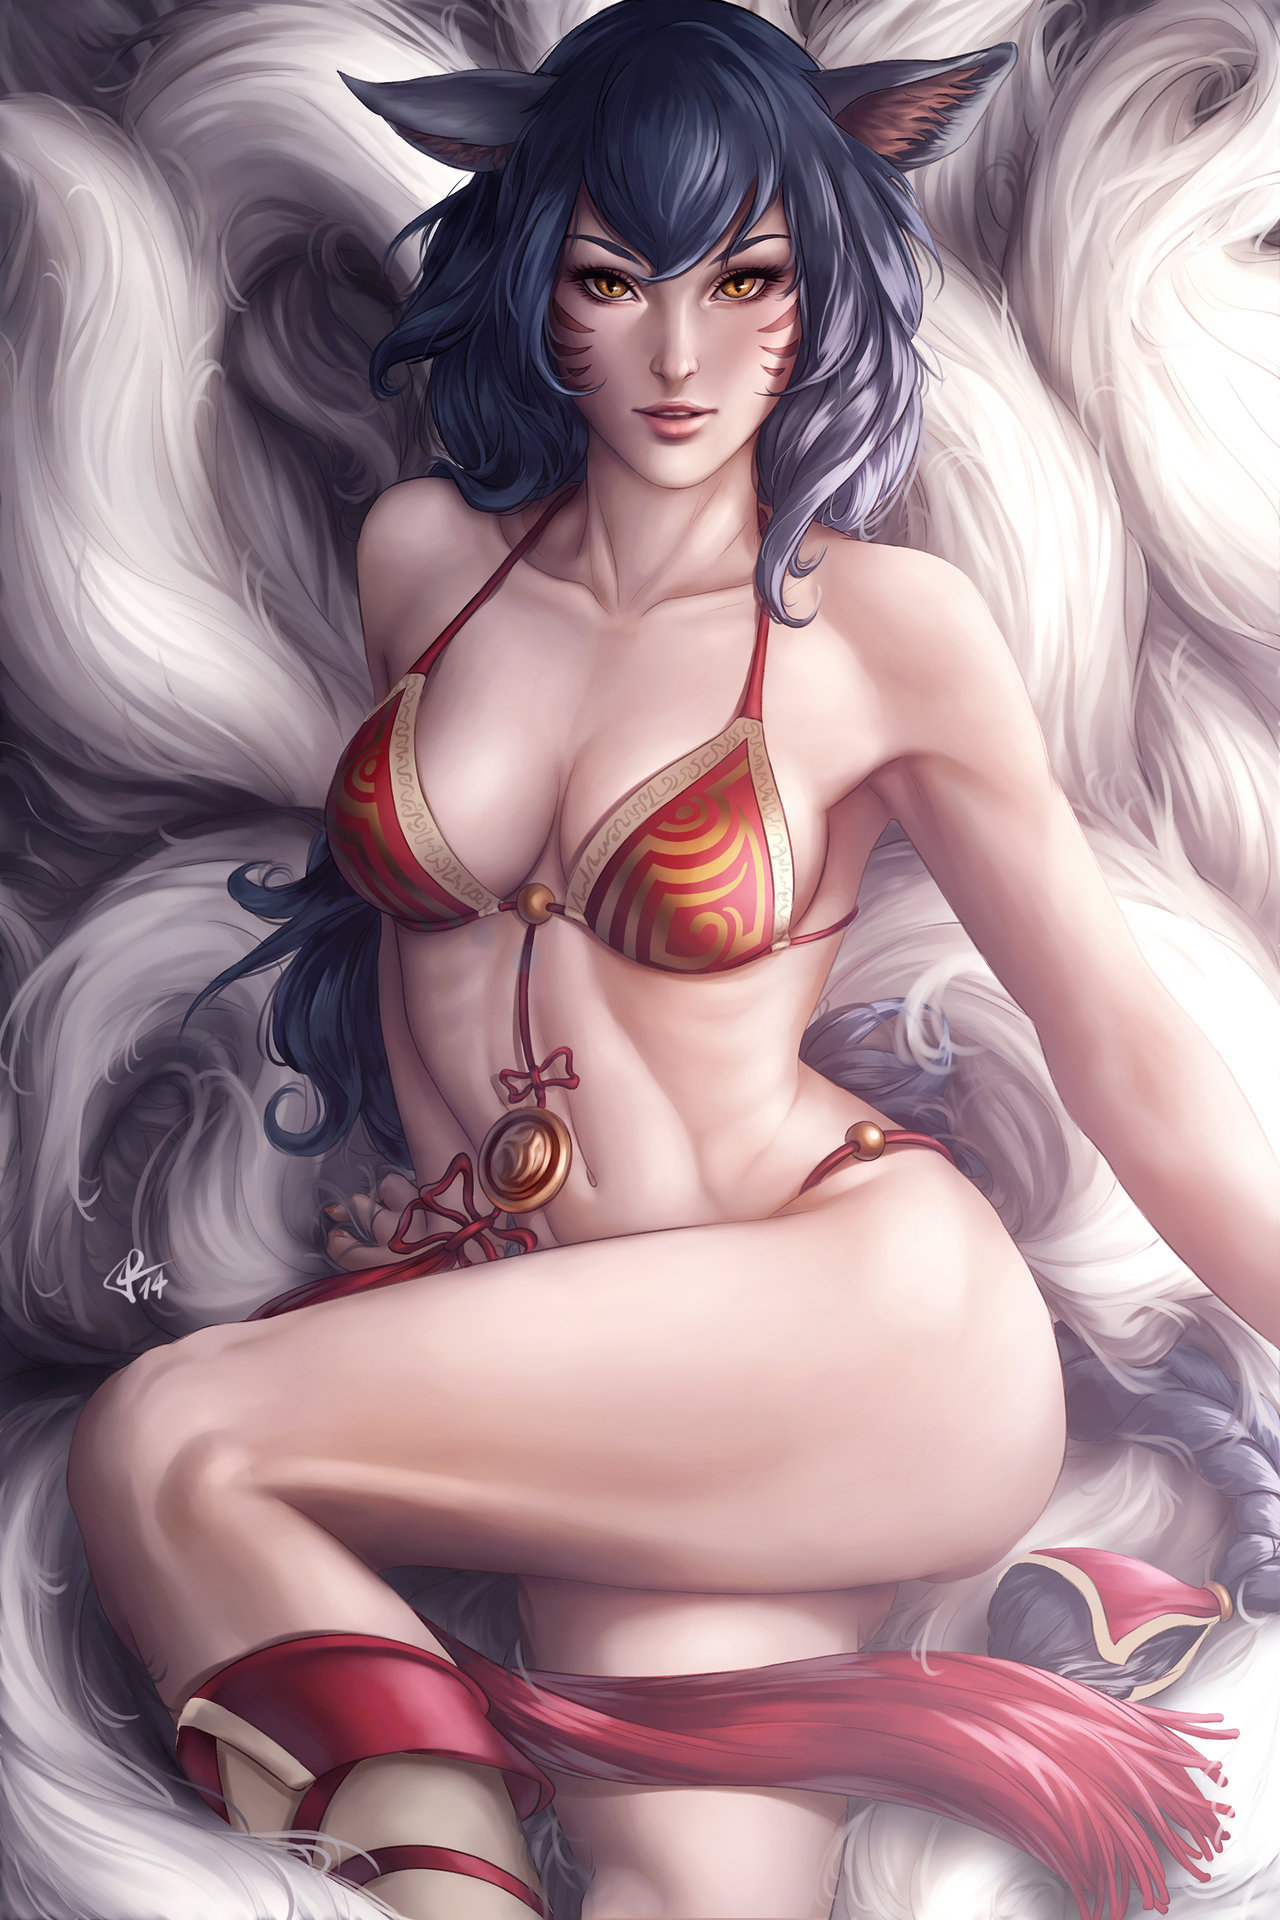 Artstation - Ahri, Aiva Blue-5838